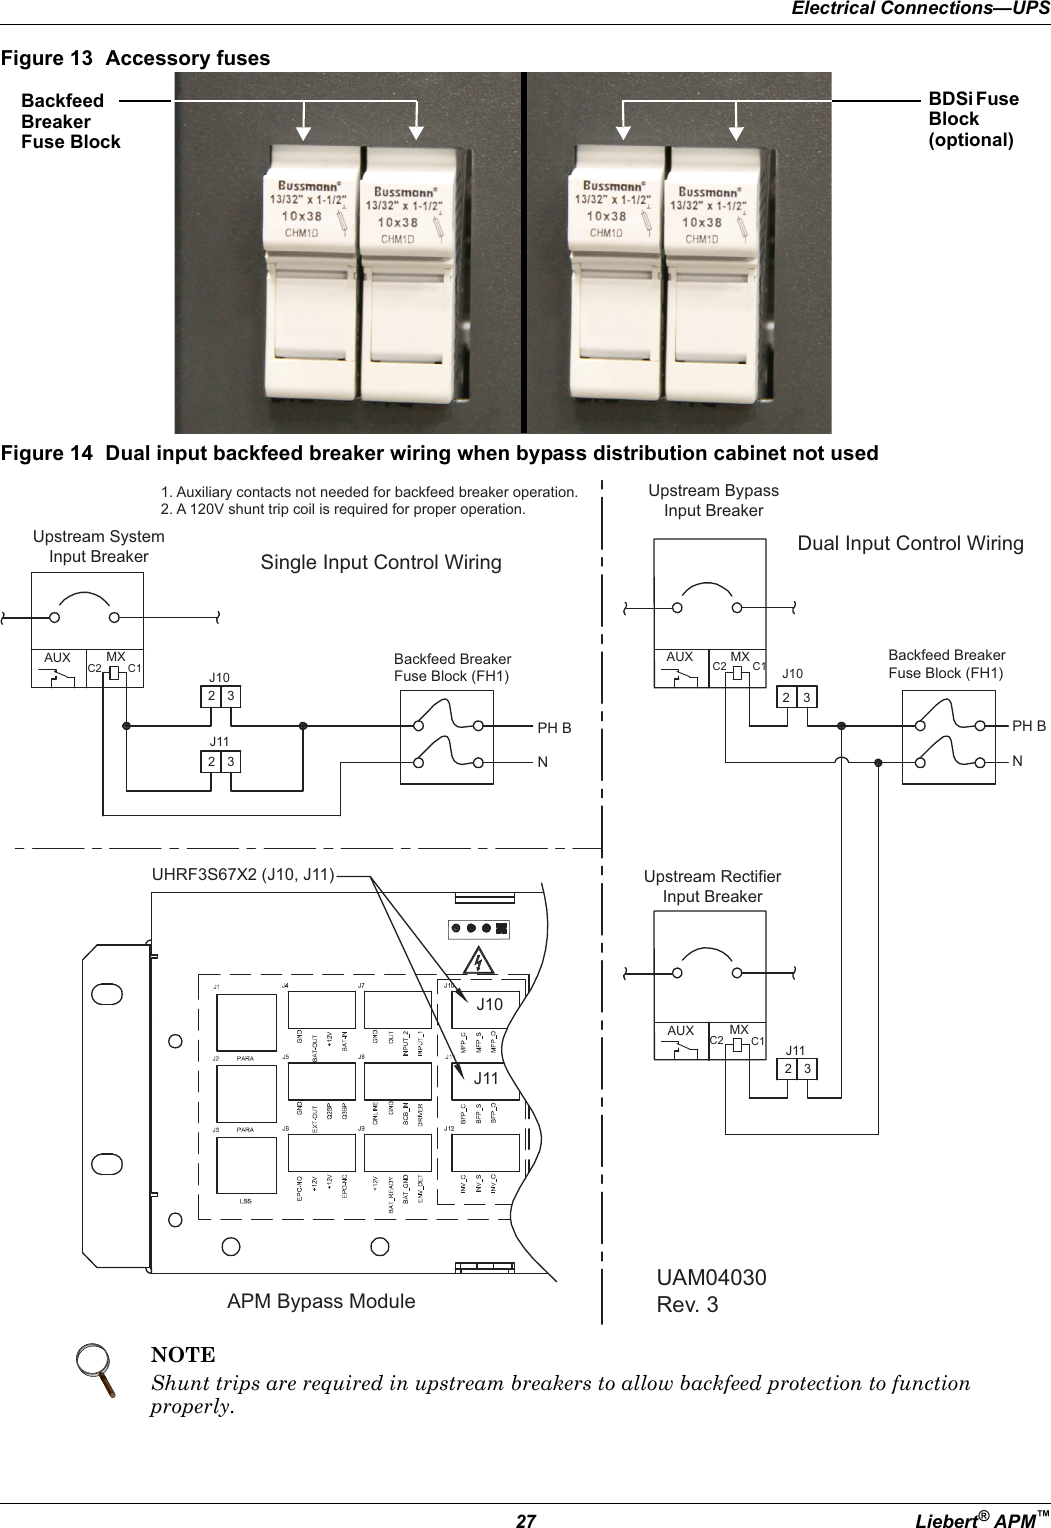 Emerson Liebert Apm On Line Ups 15 90kw User Guide How Do Shunt Trip Breakers Work Electrical Connectionsups27 Apmfigure 13 Accessory Fusesfigure 14 Dual Input Backfeed